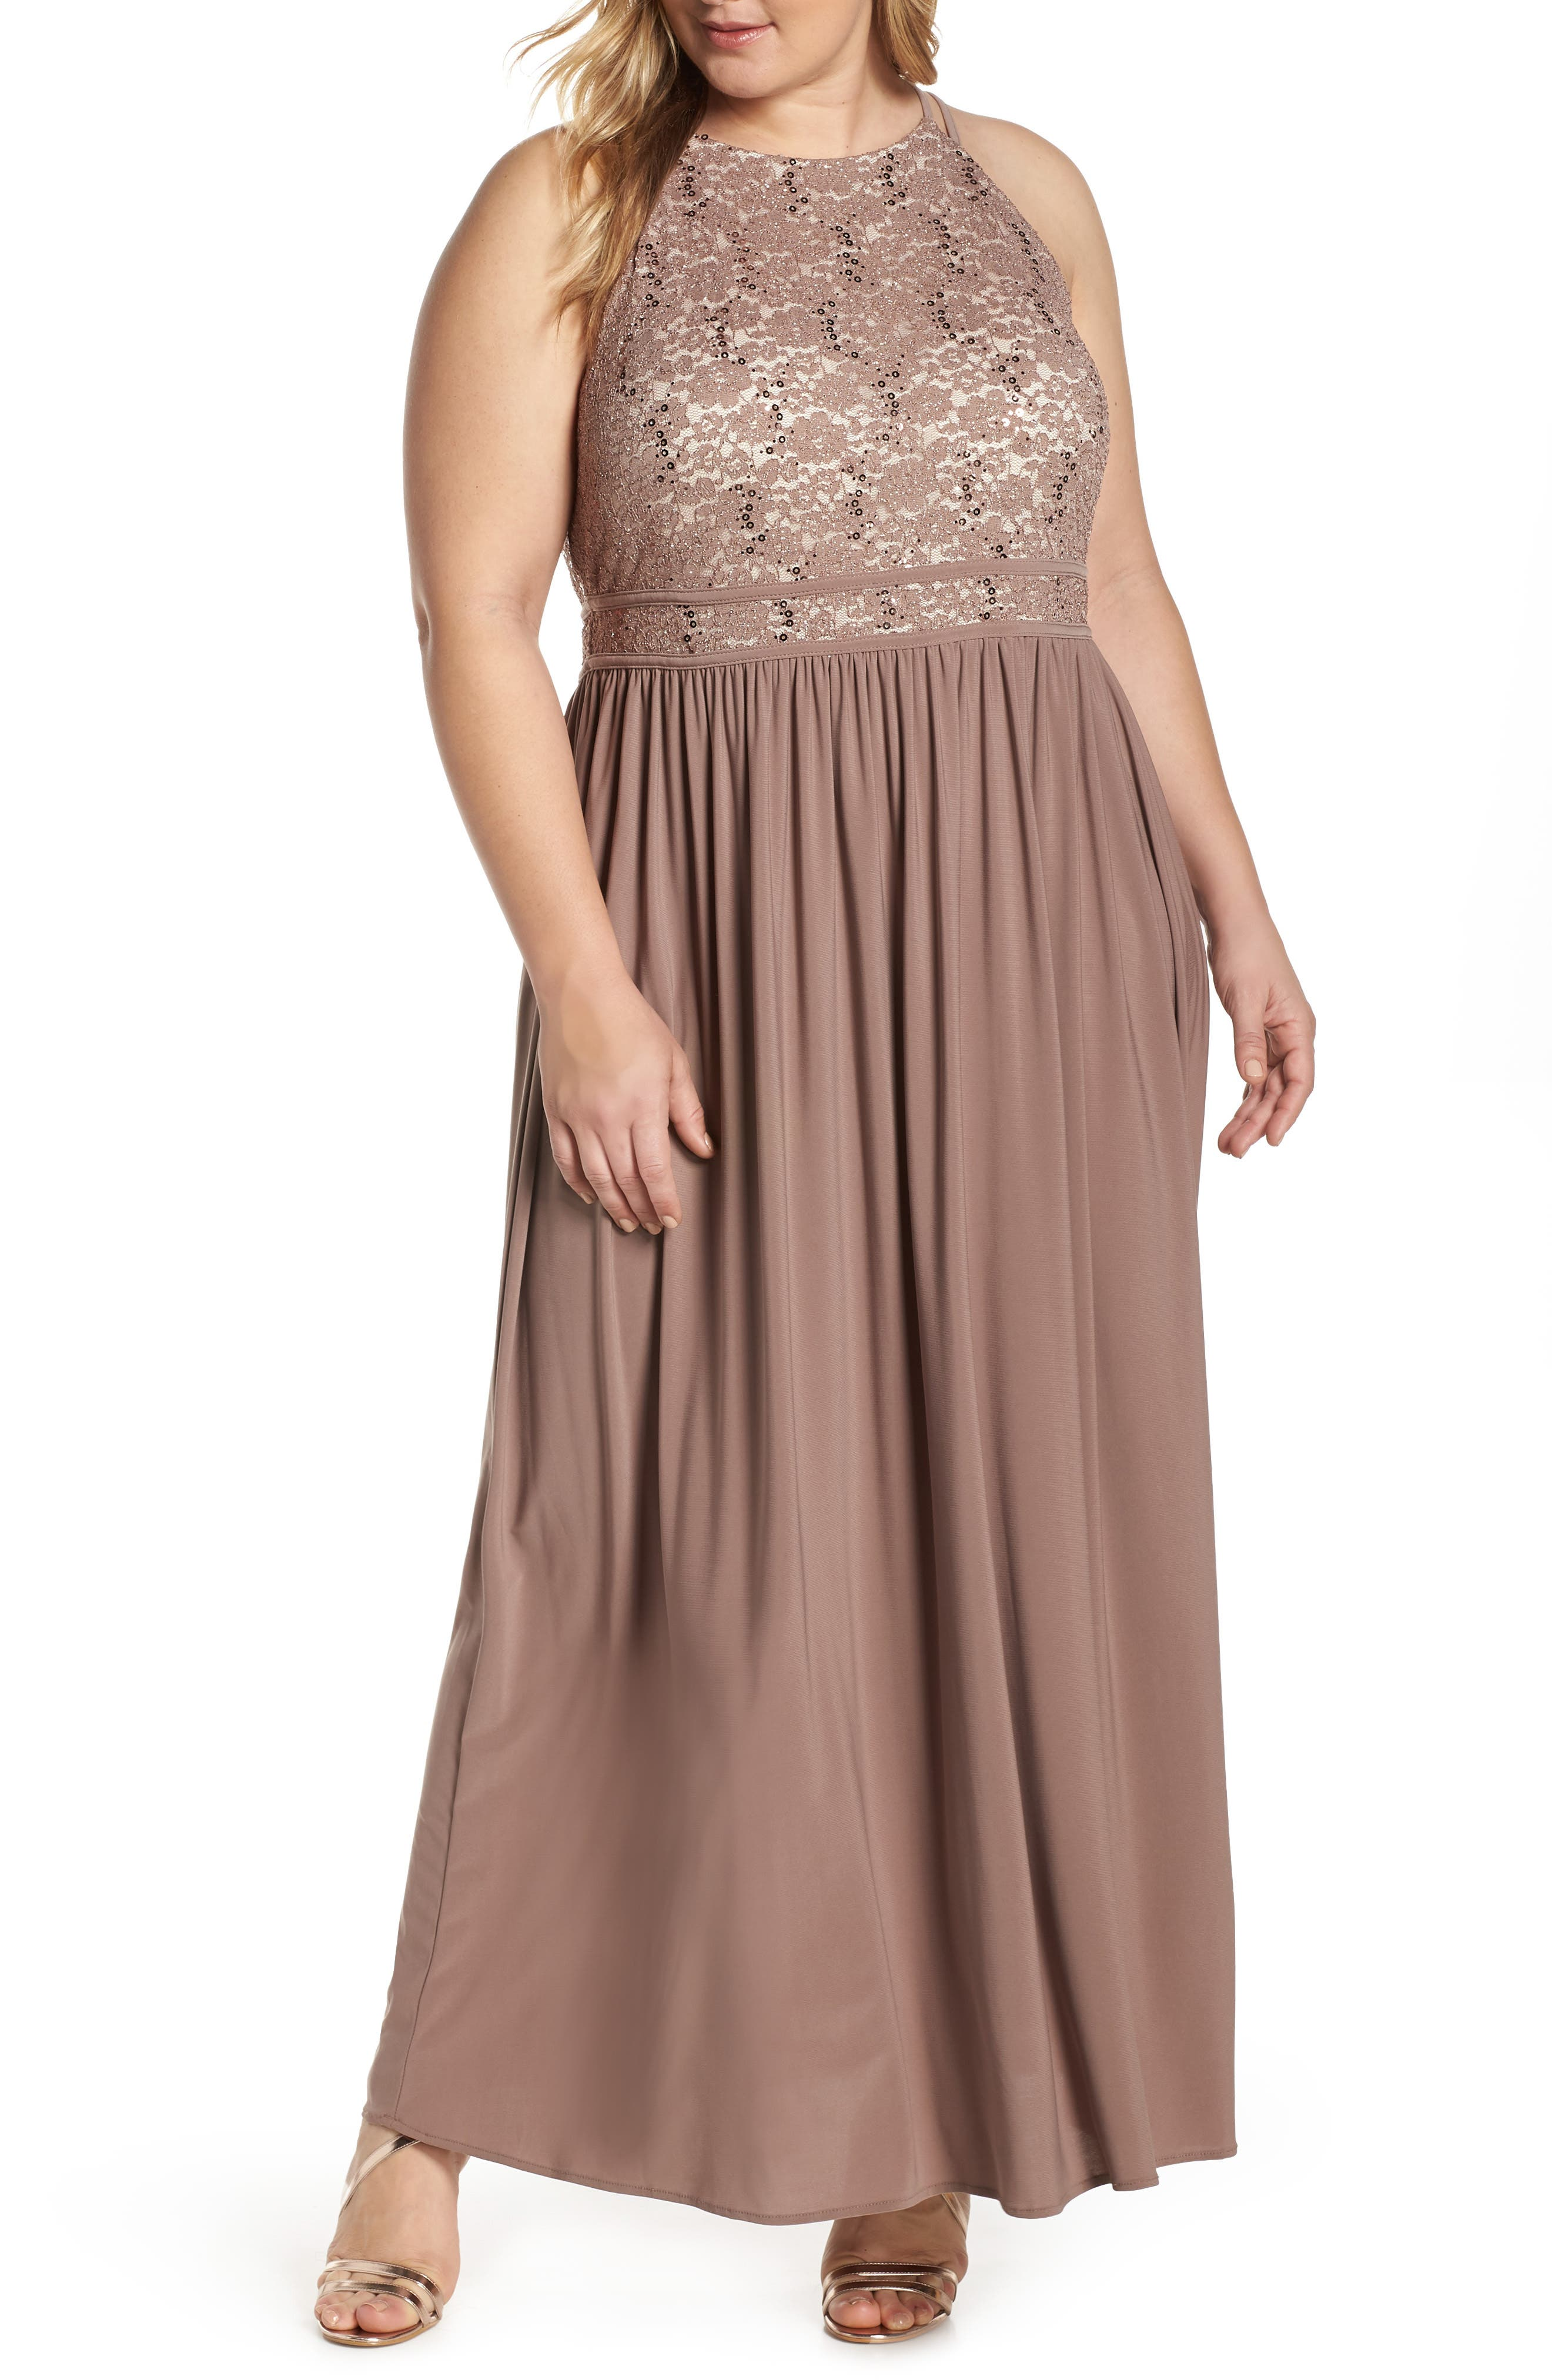 Plus Size Morgan & Co. Lace Bodice Evening Dress, Beige